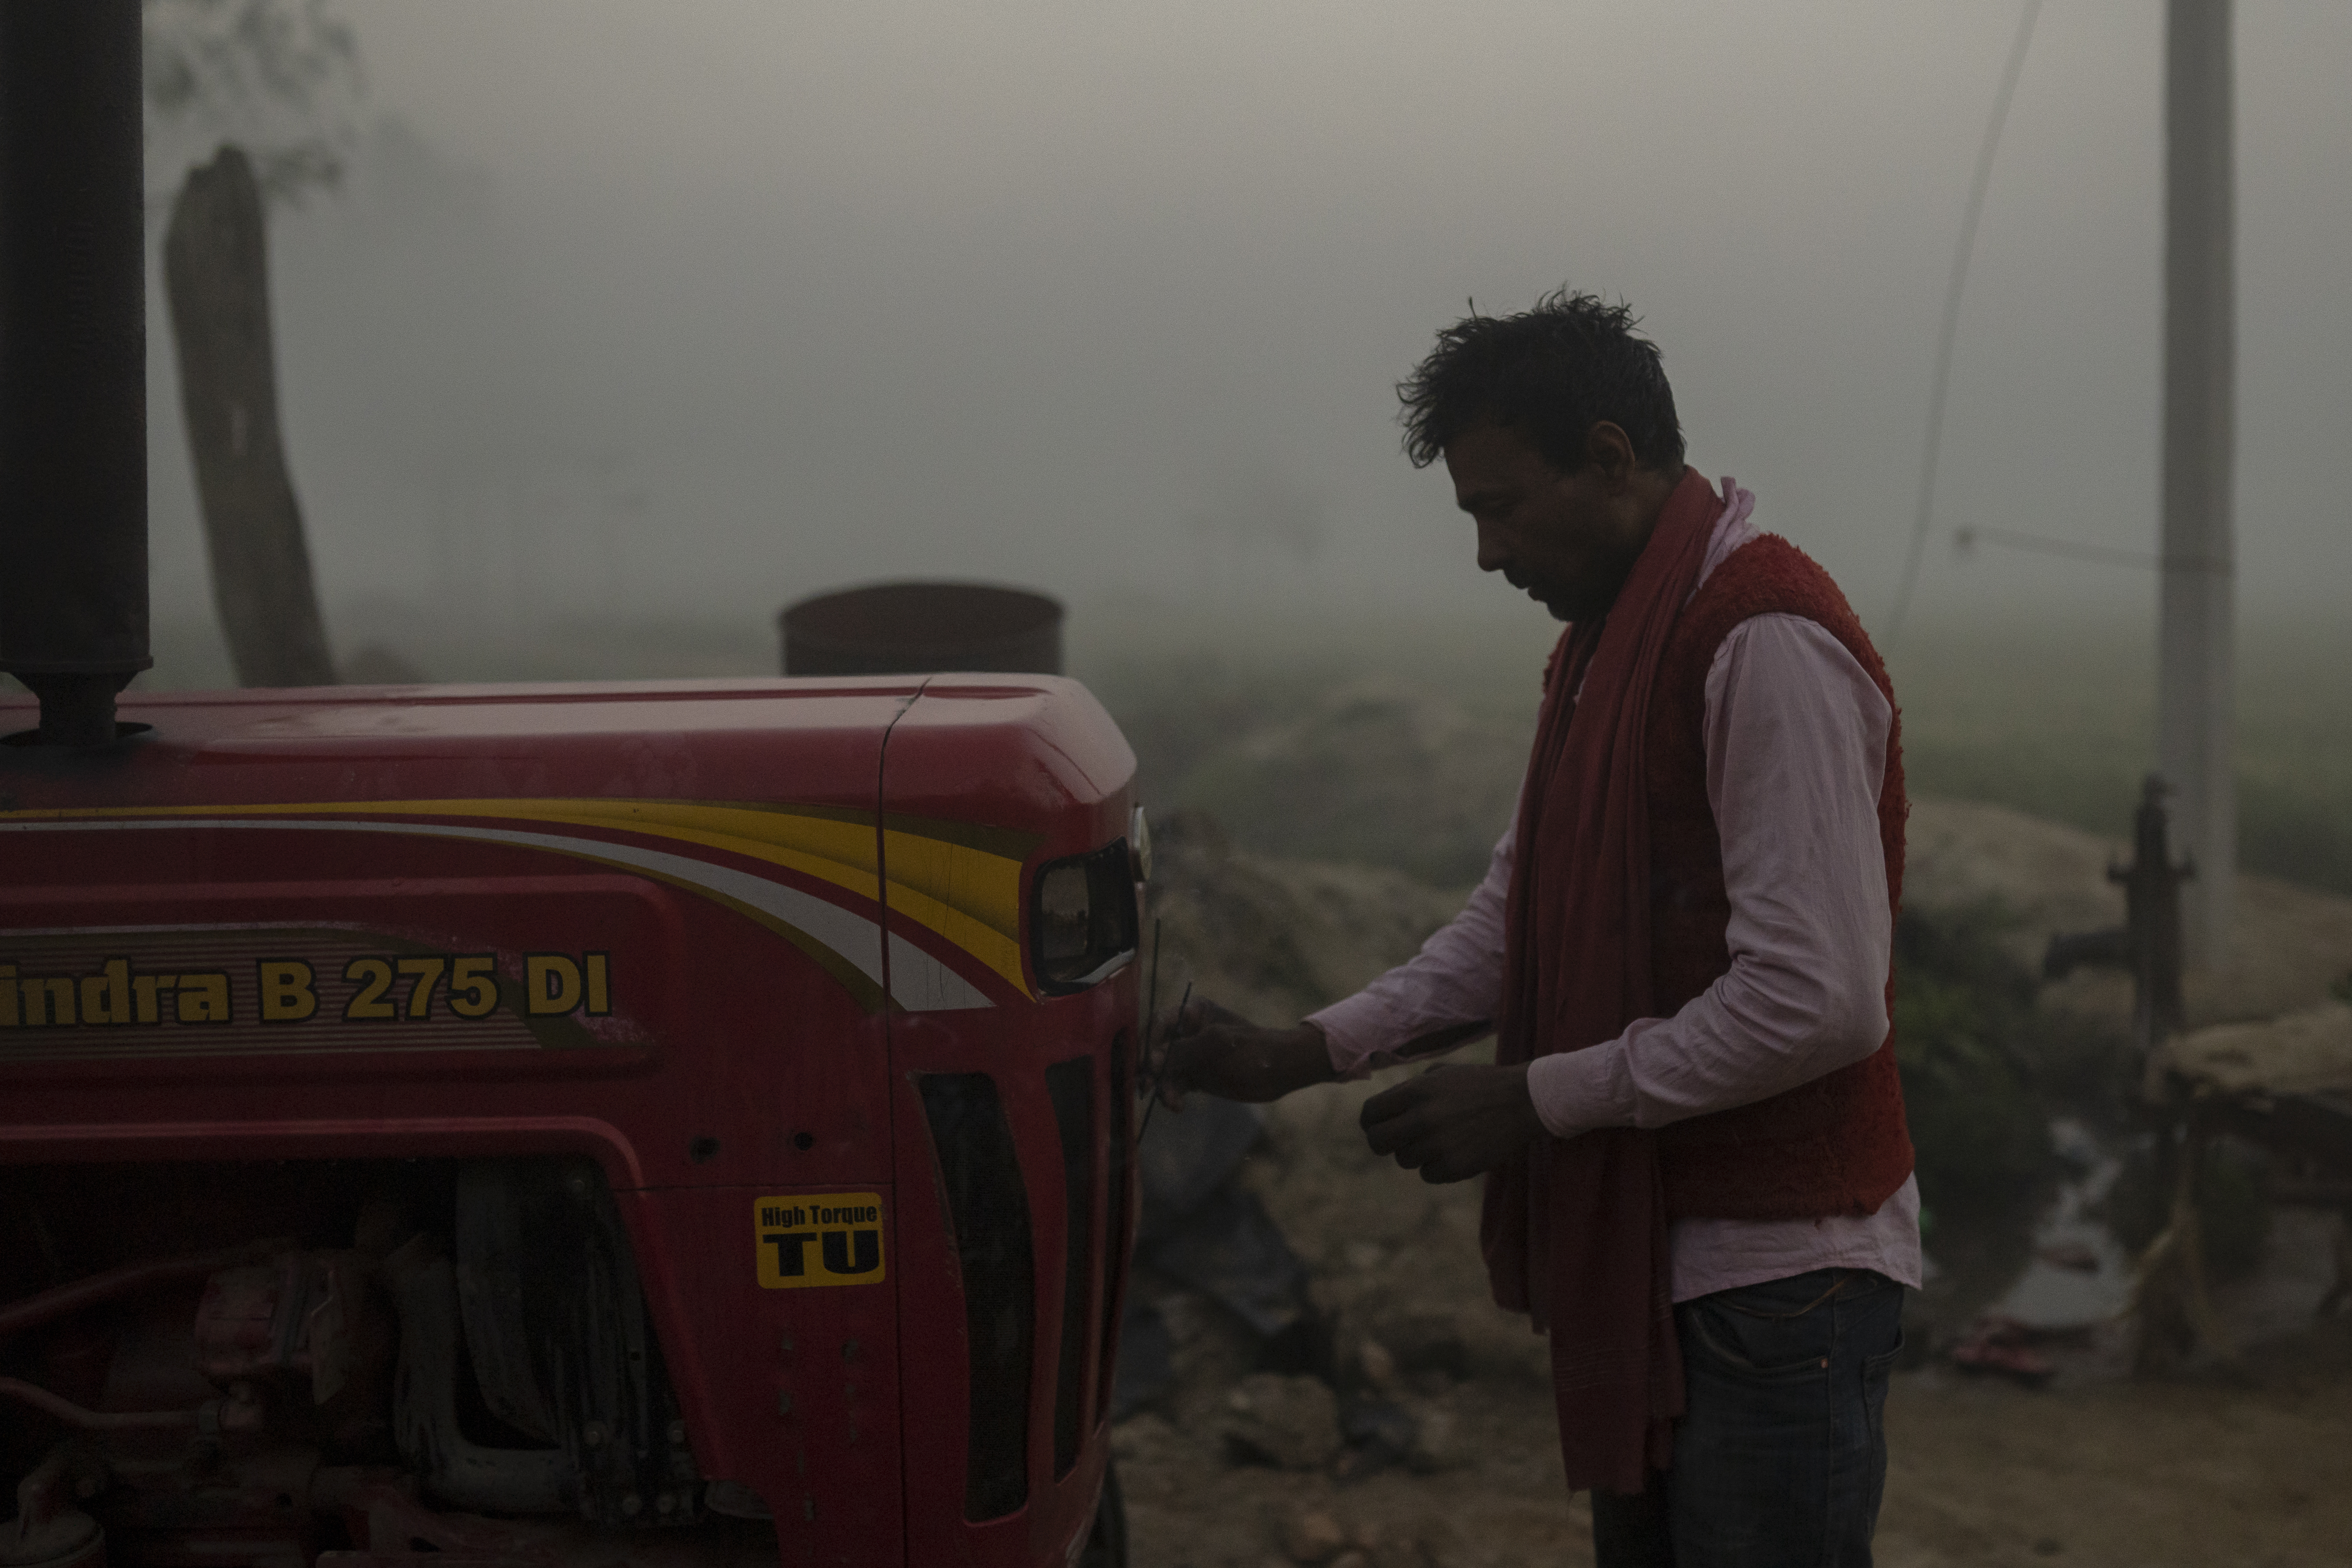 Making offerings to machines is a sign of respect to the deity Biswakarma (the Hindu architect god) in this part of Nepal. Lorik burns incense near his tractor early in the morning before he begins work. (AtlasNetwork.org Photo / Bernat Parera)